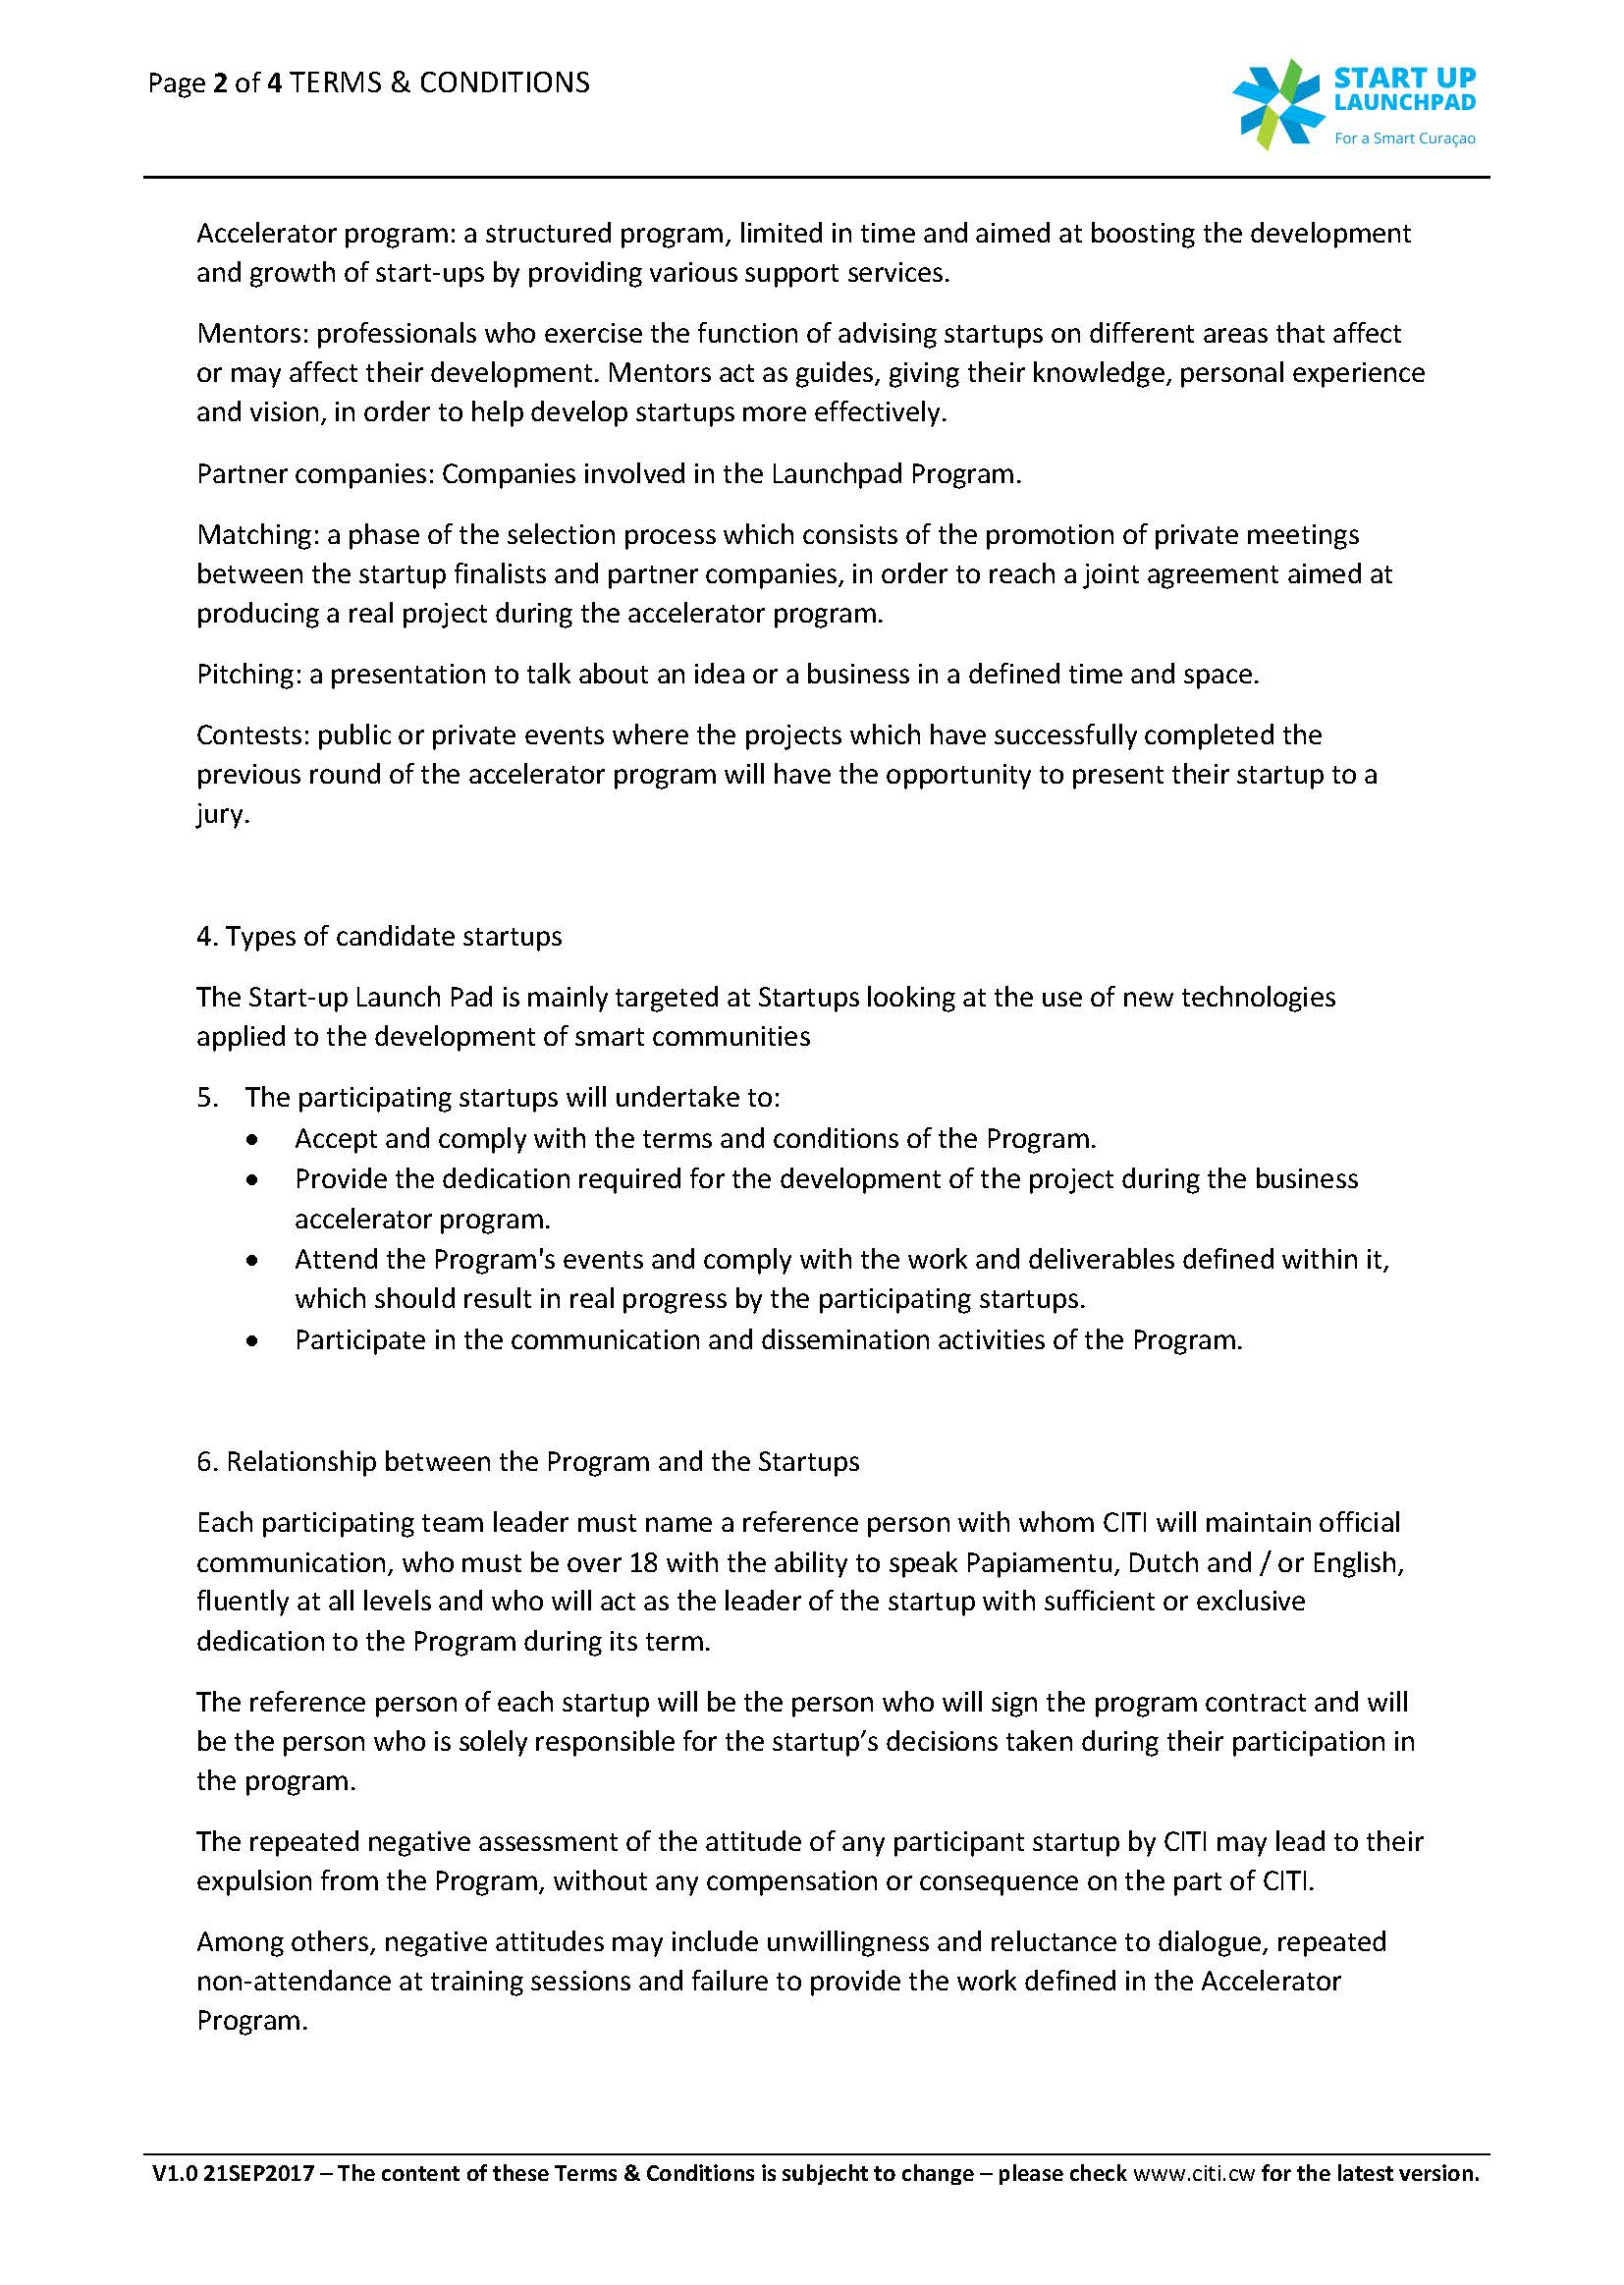 TERMS and Conditions v1_0 21SEP2017_Page_2